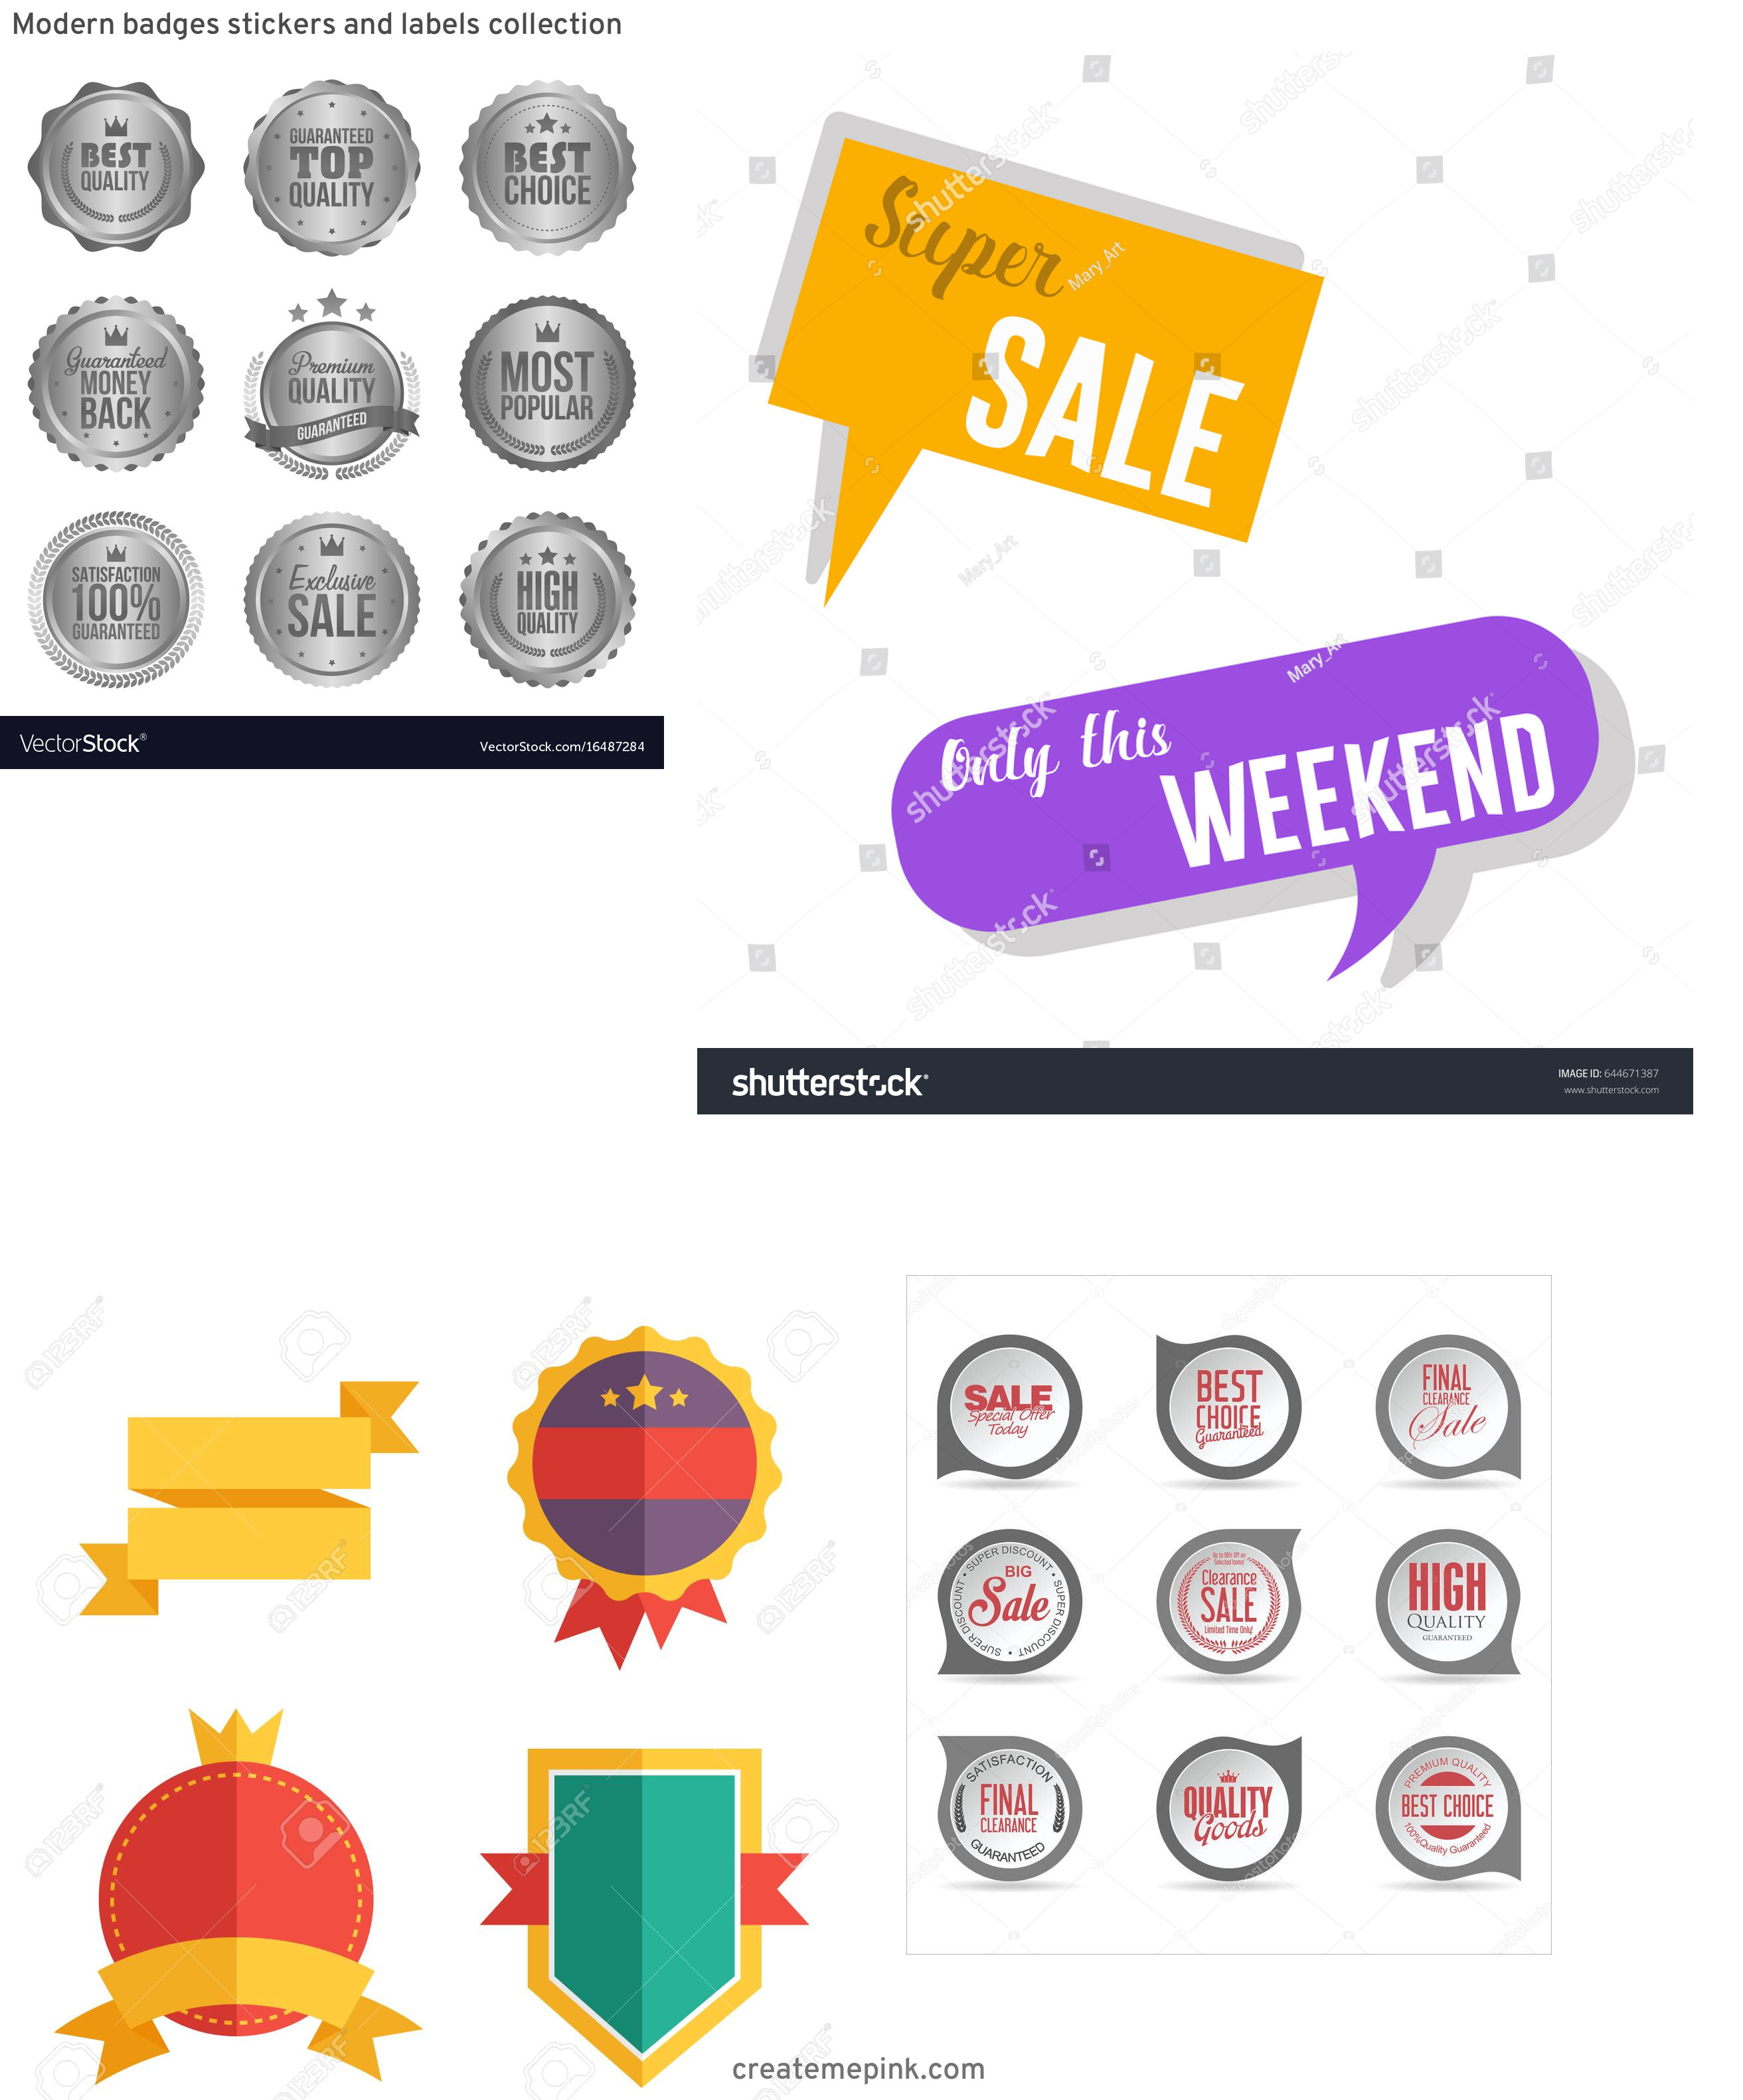 Modern Vector Badges: Modern Badges Stickers And Labels Collection